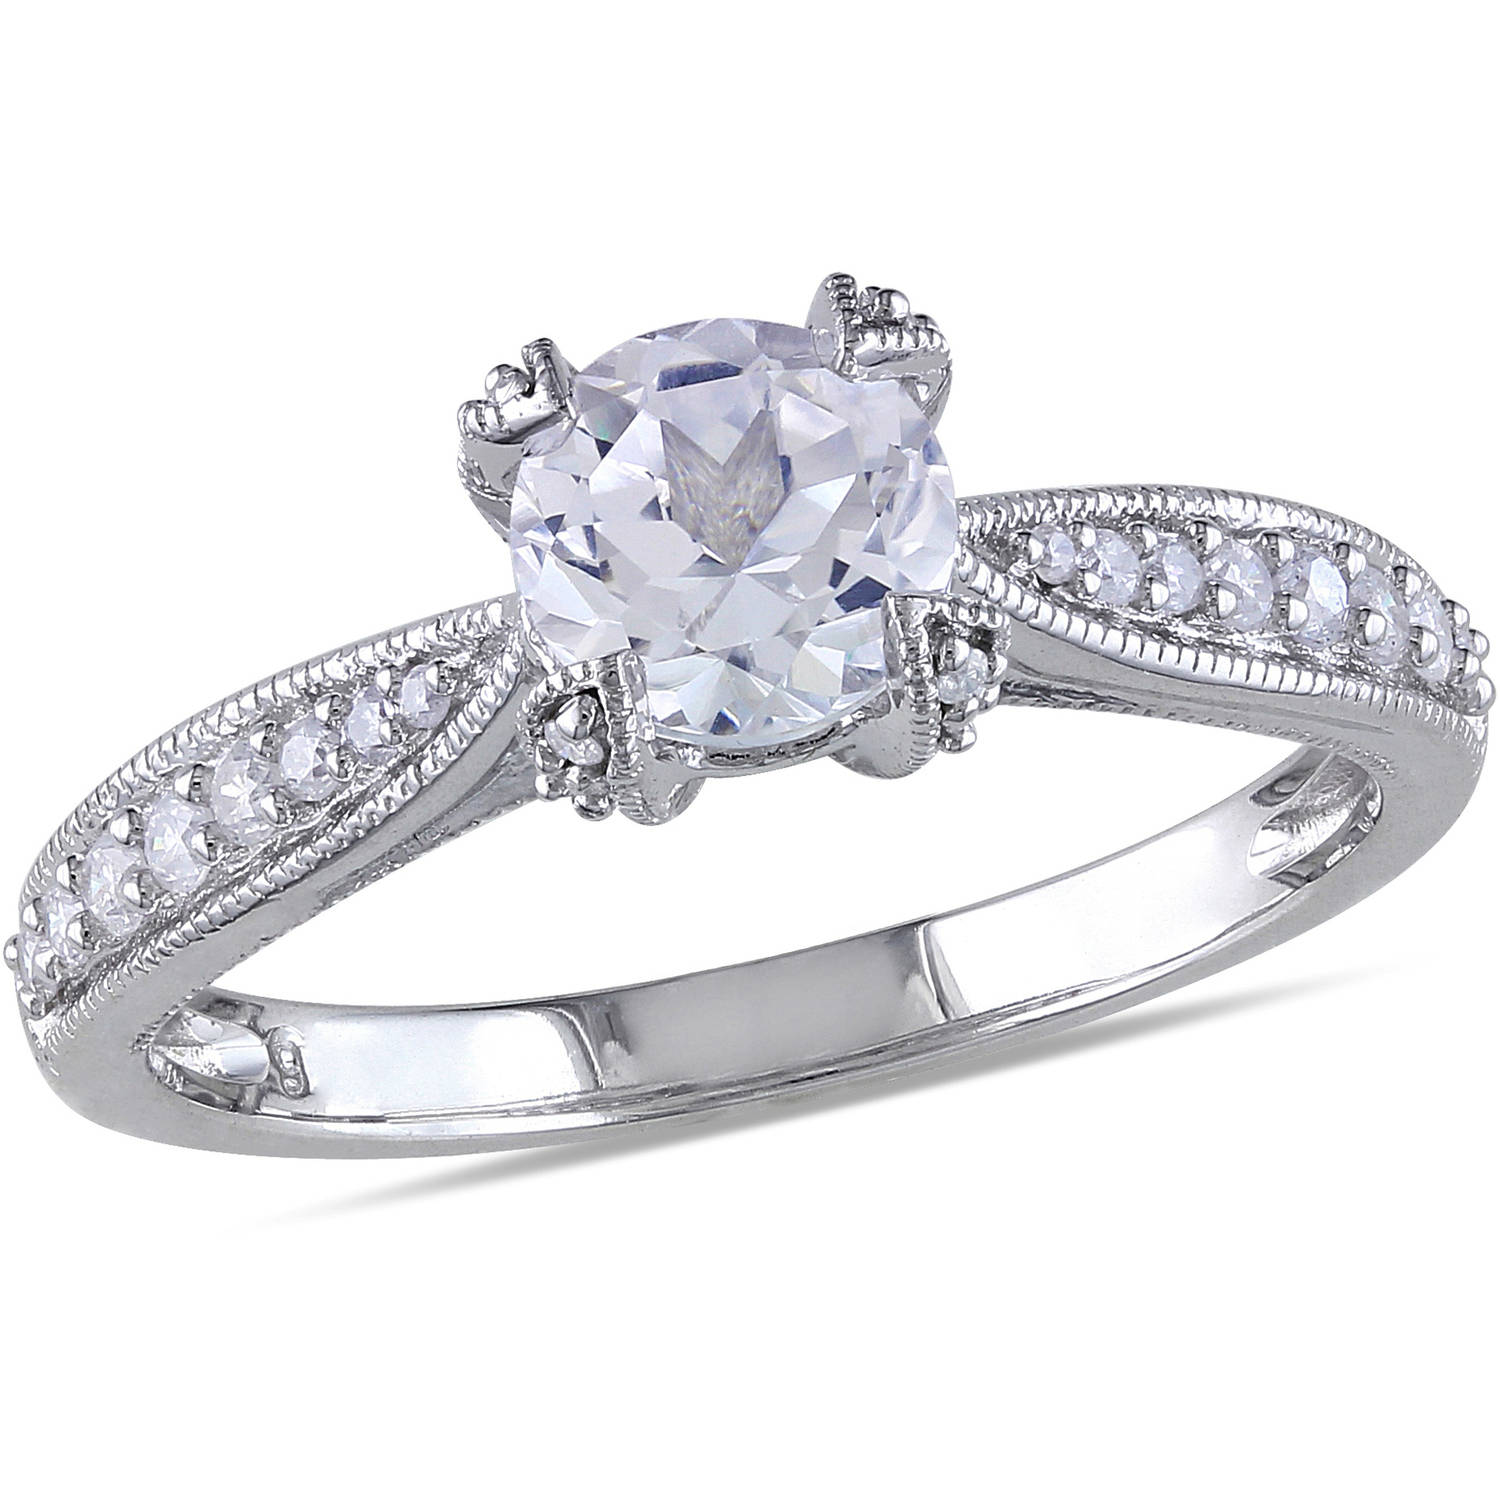 Miabella 1 5 Carat T.W. Diamond and 1 Carat T.G.W. Created White Sapphire Sterling Silver Engagement Ring by Generic